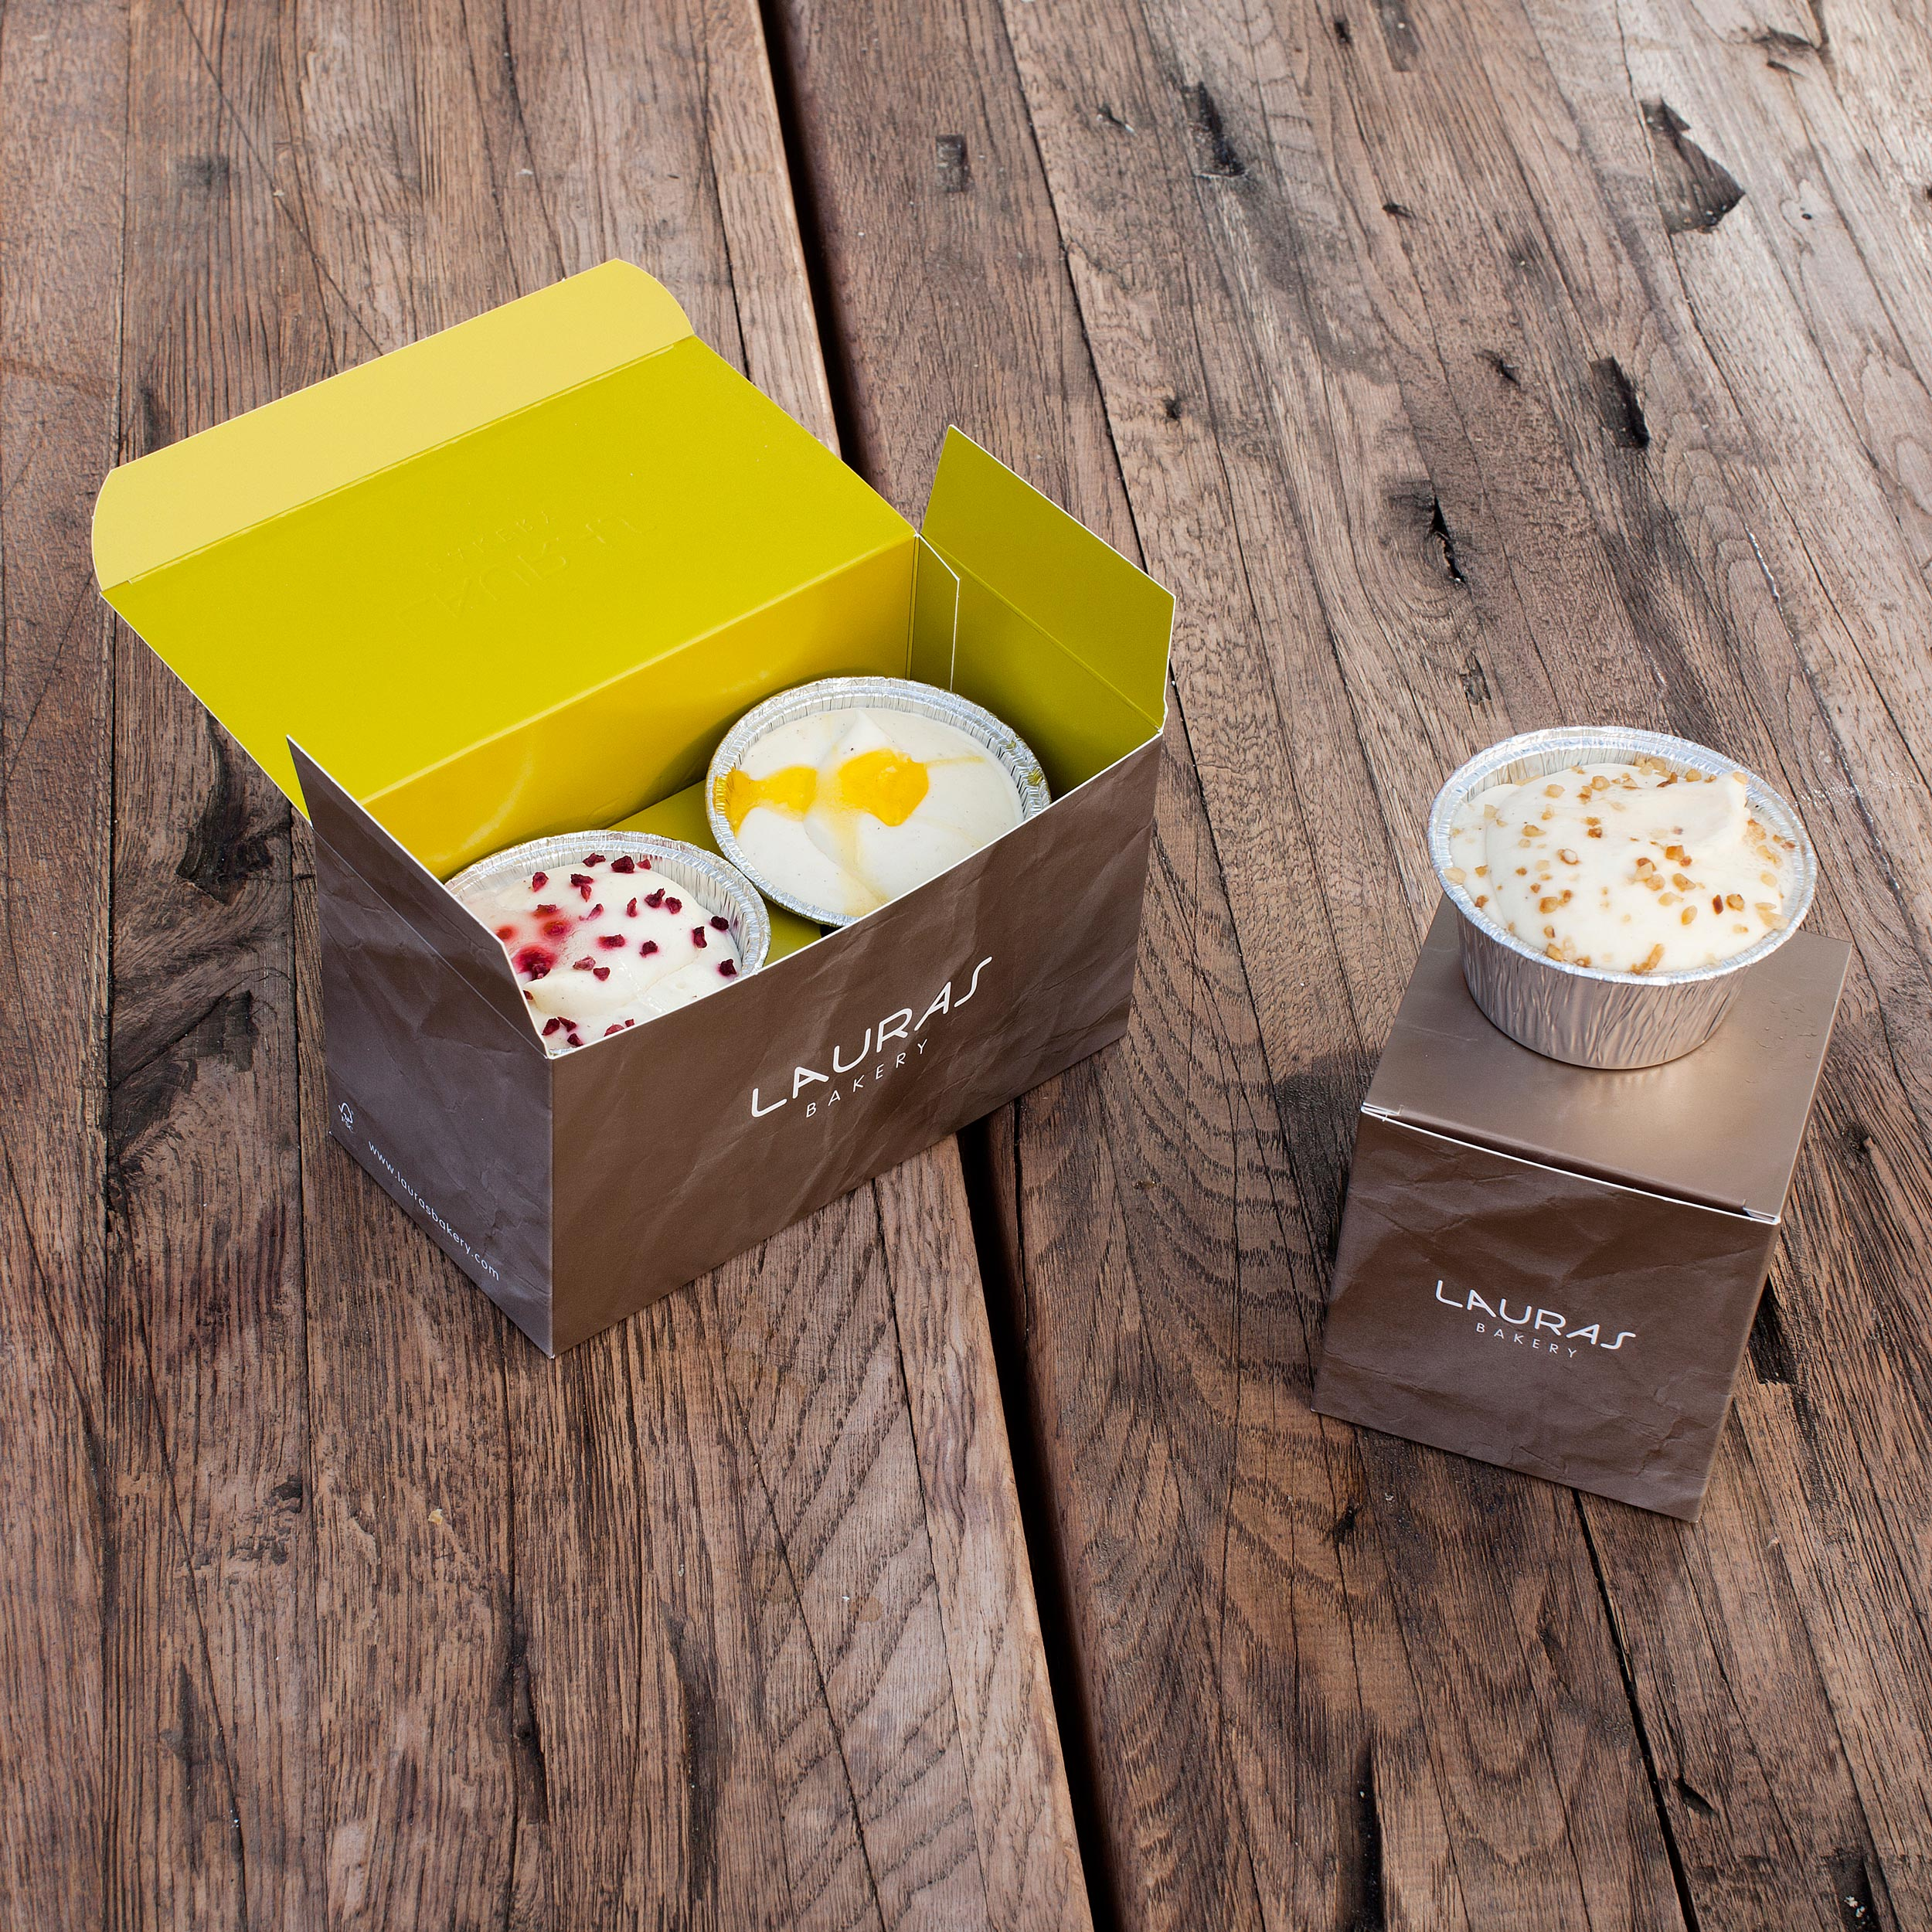 Boxes painted in bright colours on the inside  to enhance the exciting moment of opening a box filled with pastry